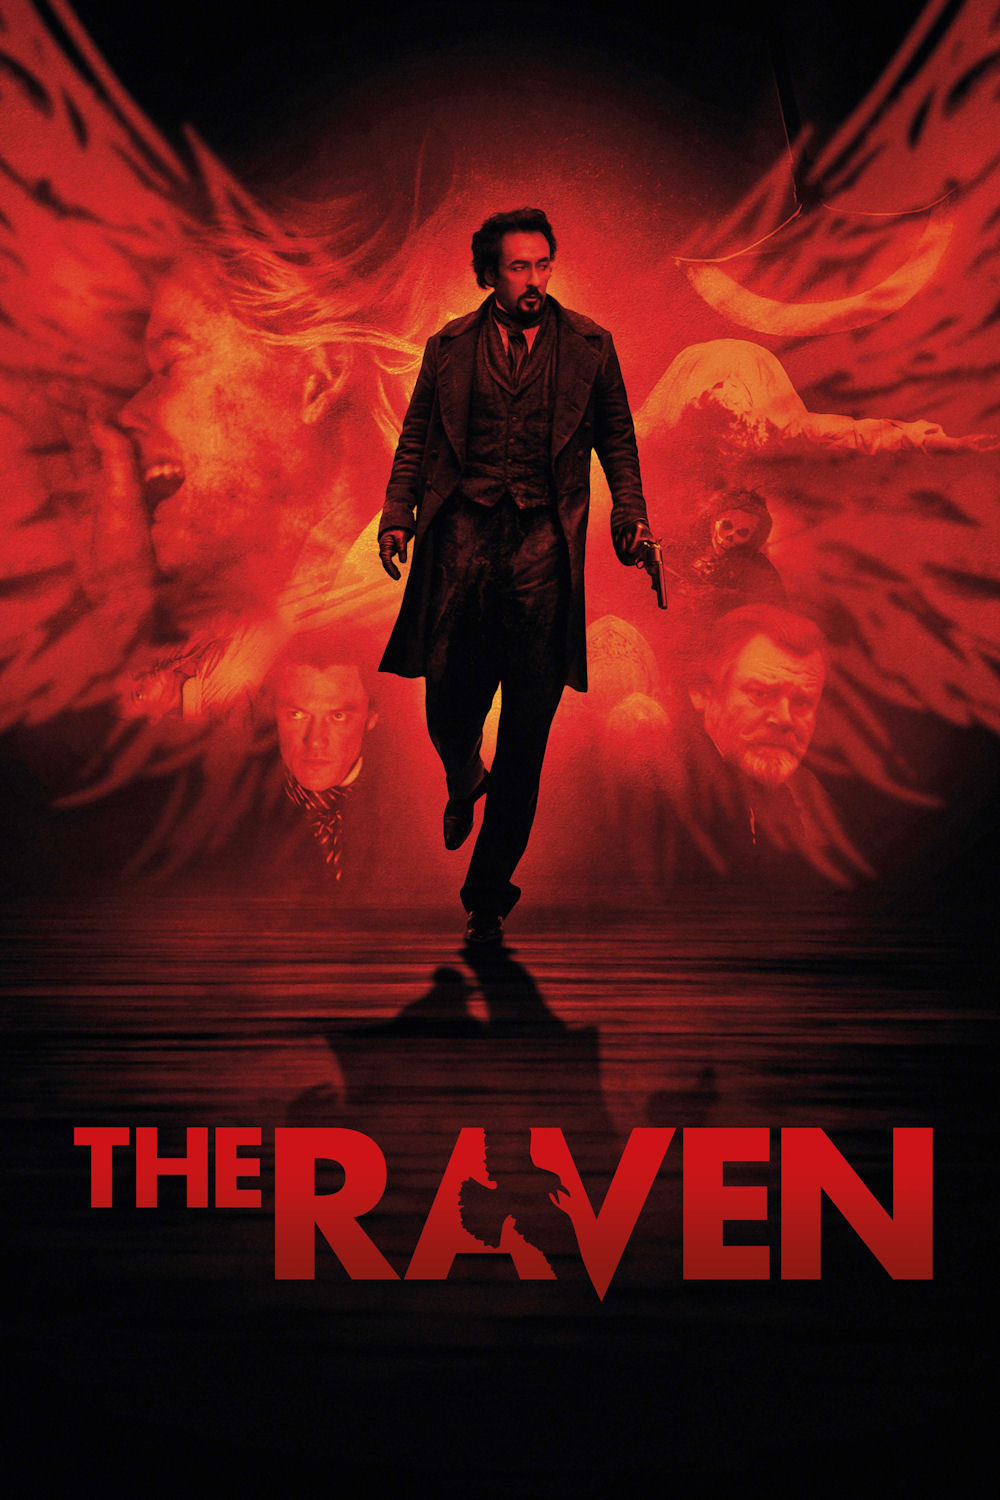 The Raven – Surprisingly good Edgar Allan Poe based thriller